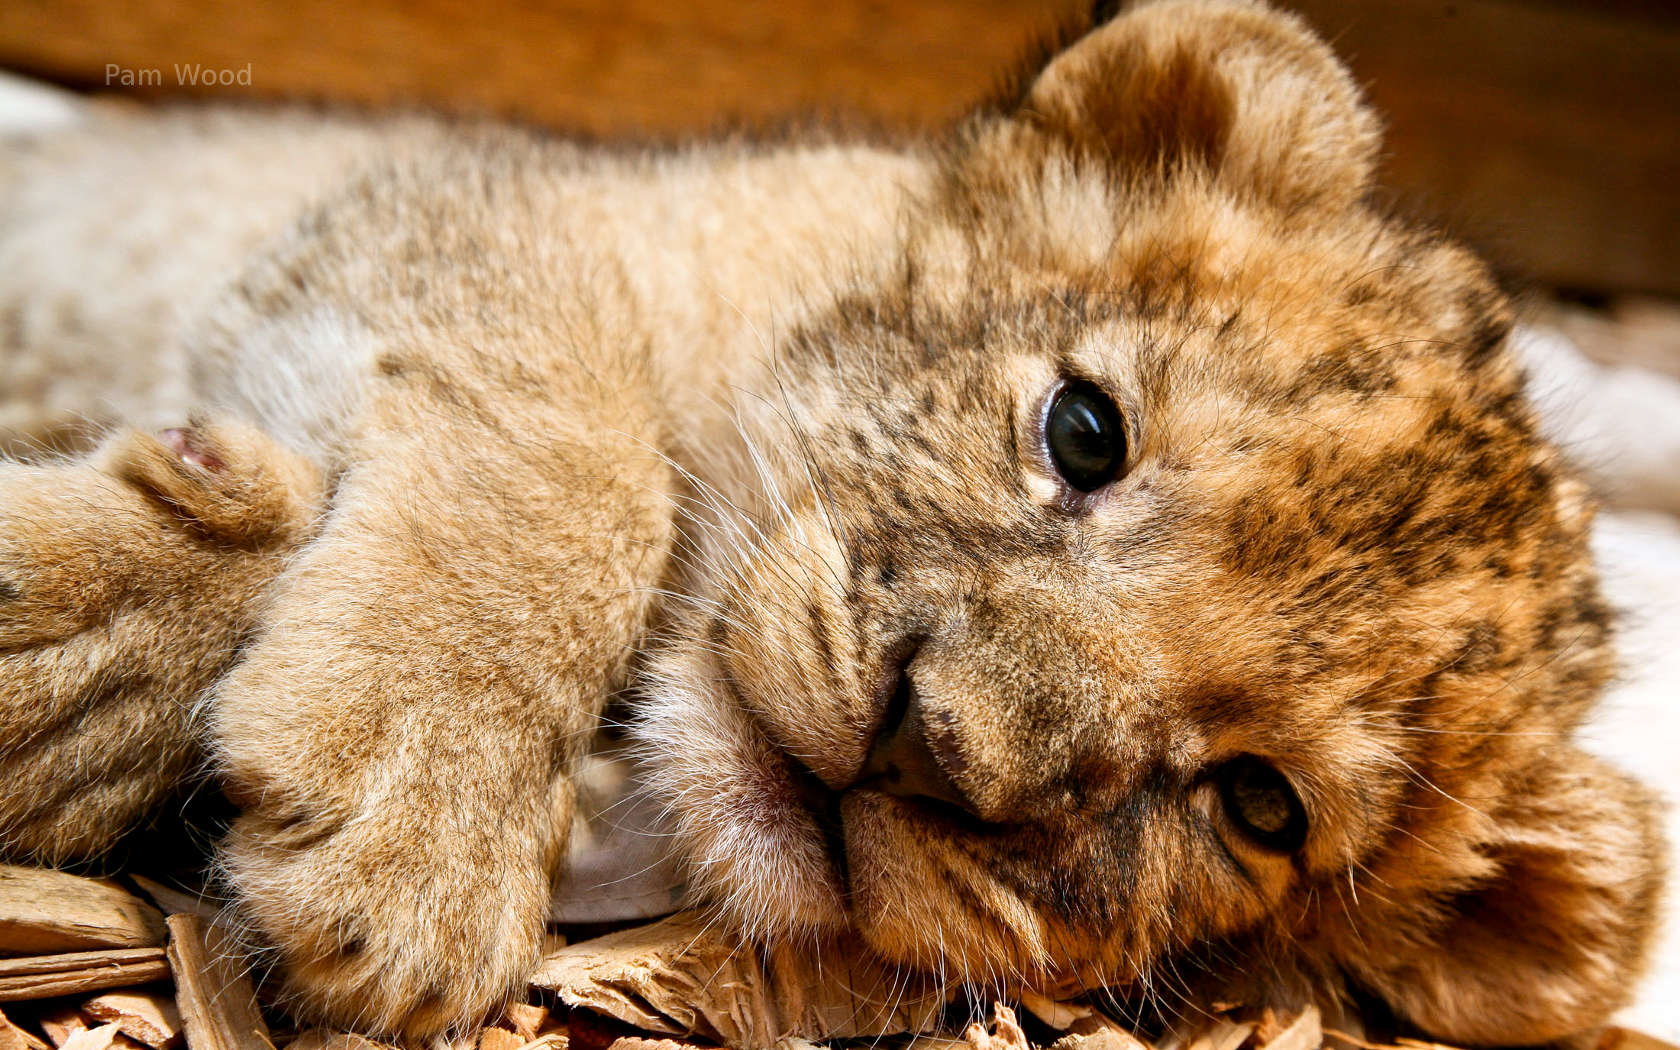 Lion cubs images cute lion cub wallpaper photos 37492155 1680x1050